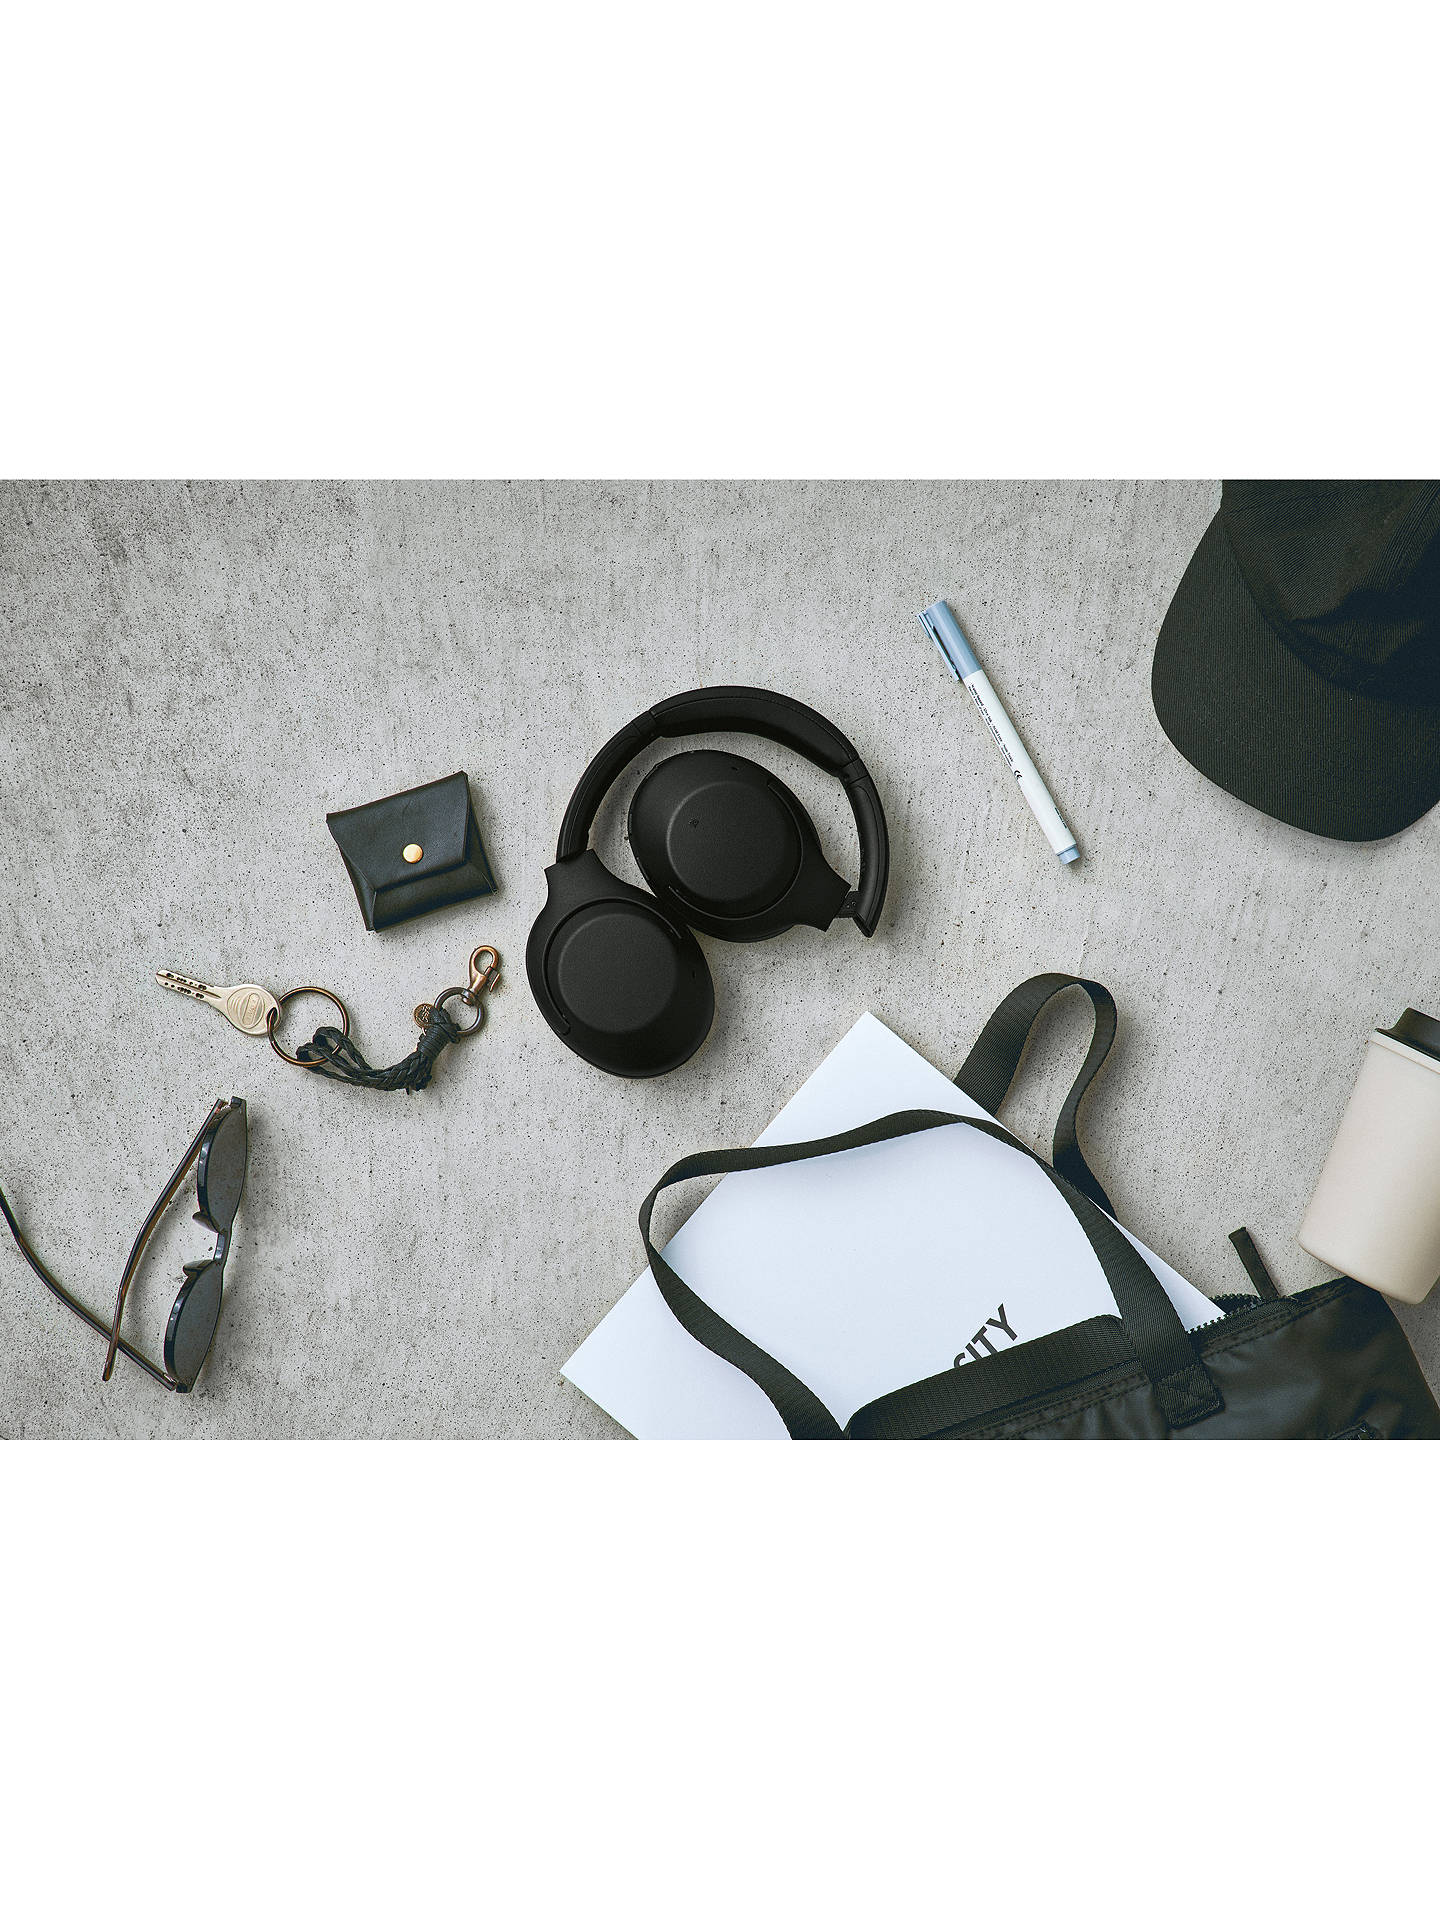 Buy Sony WH-XB900N Noise Cancelling Extra Bass Bluetooth NFC Wireless Over-Ear Headphones with Mic/Remote, Black Online at johnlewis.com